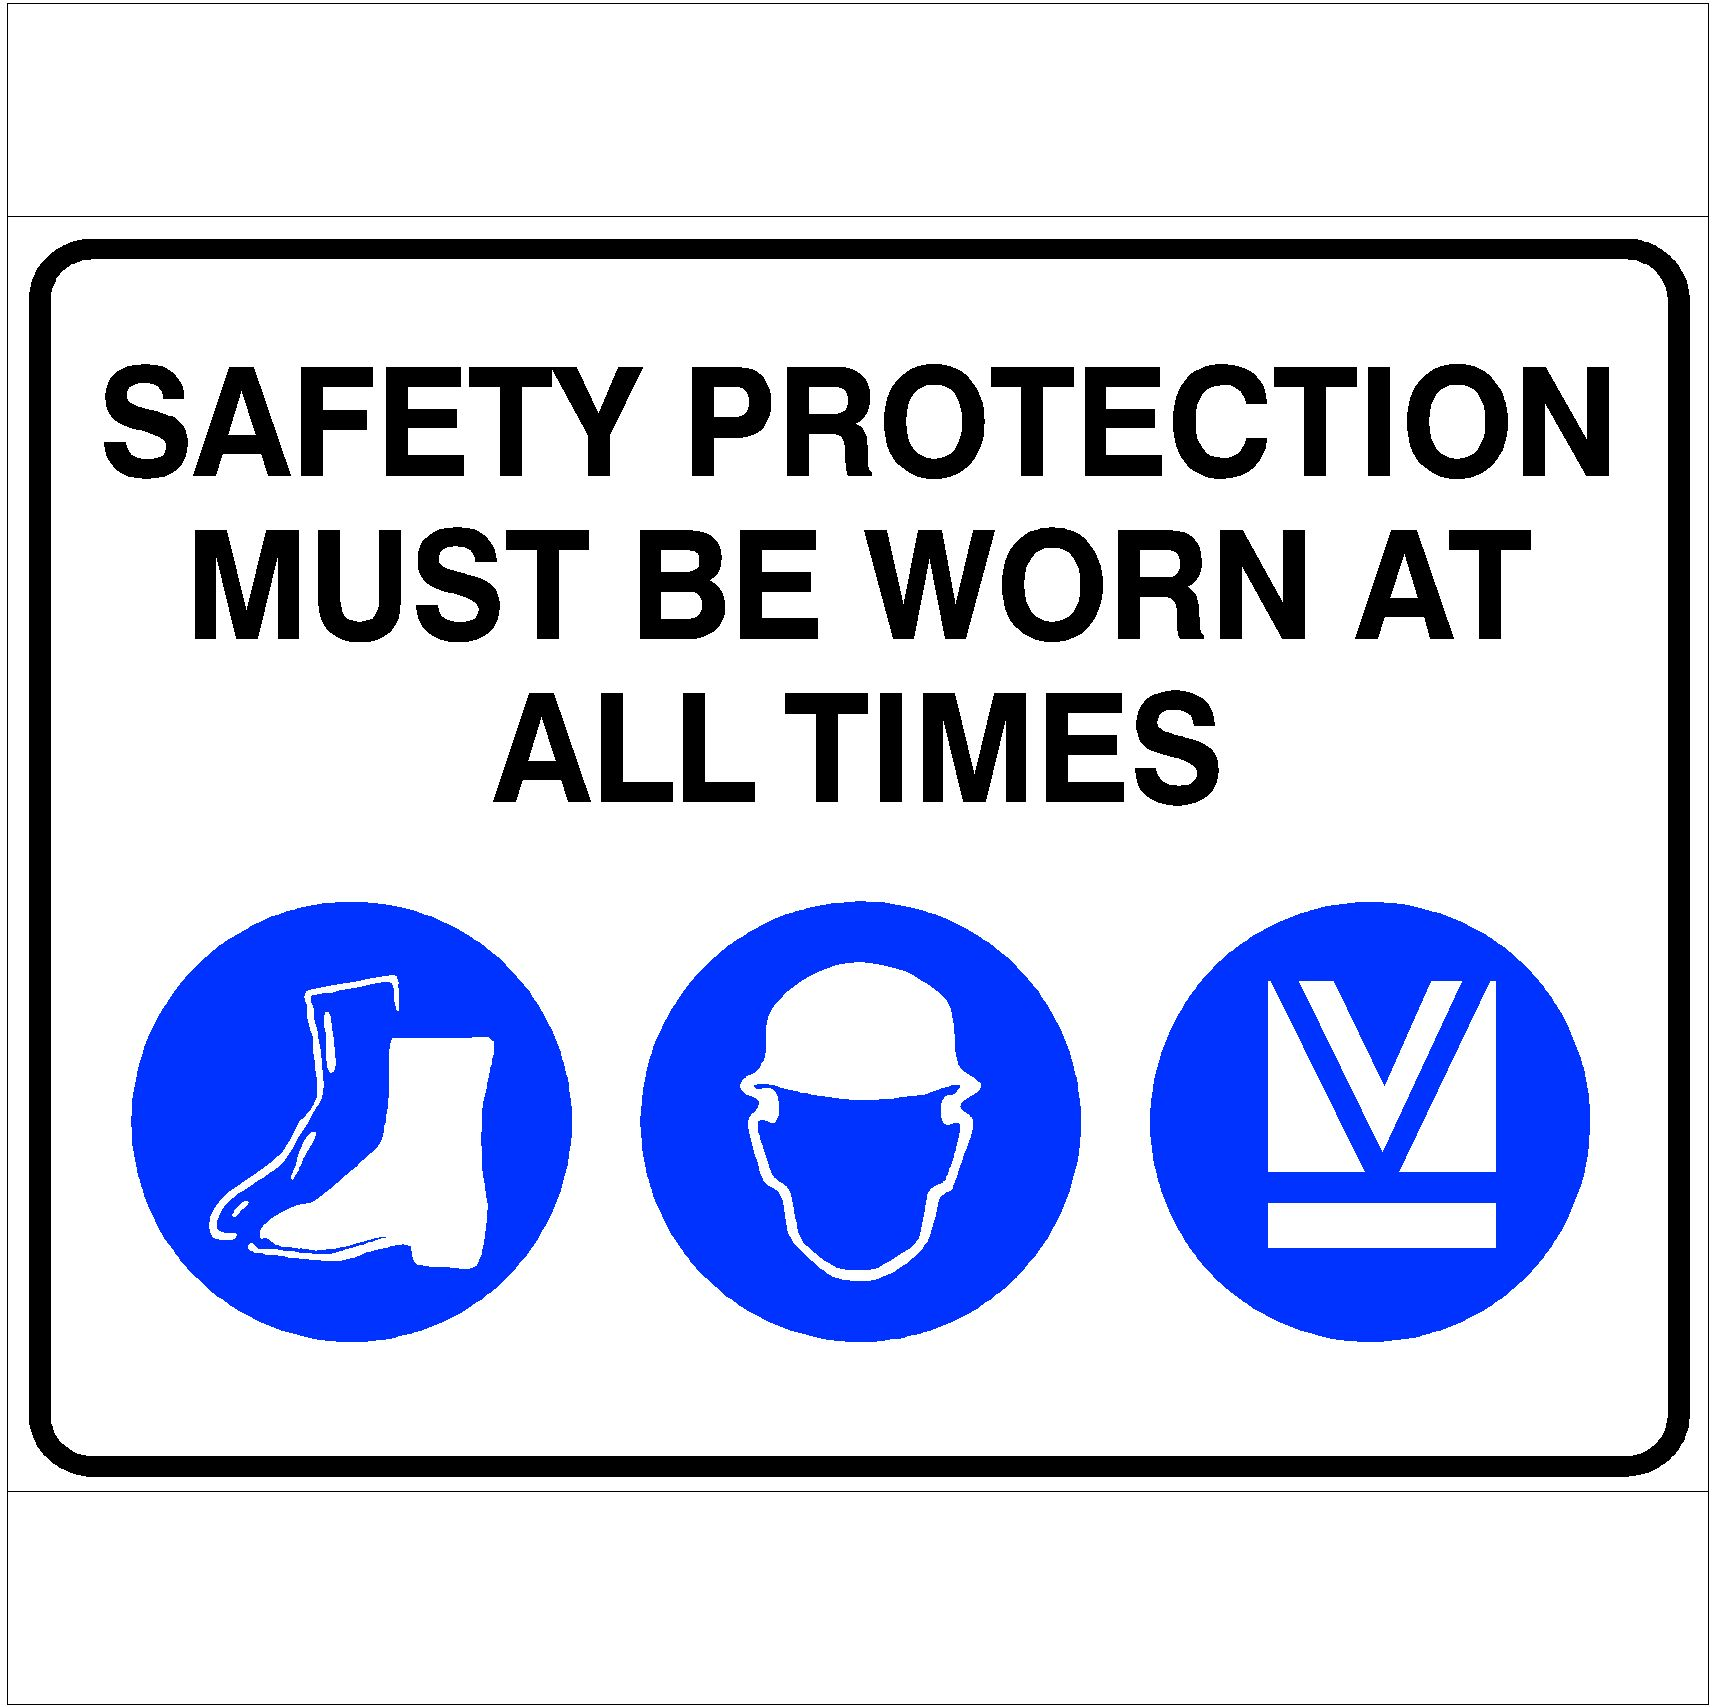 Safety Protection